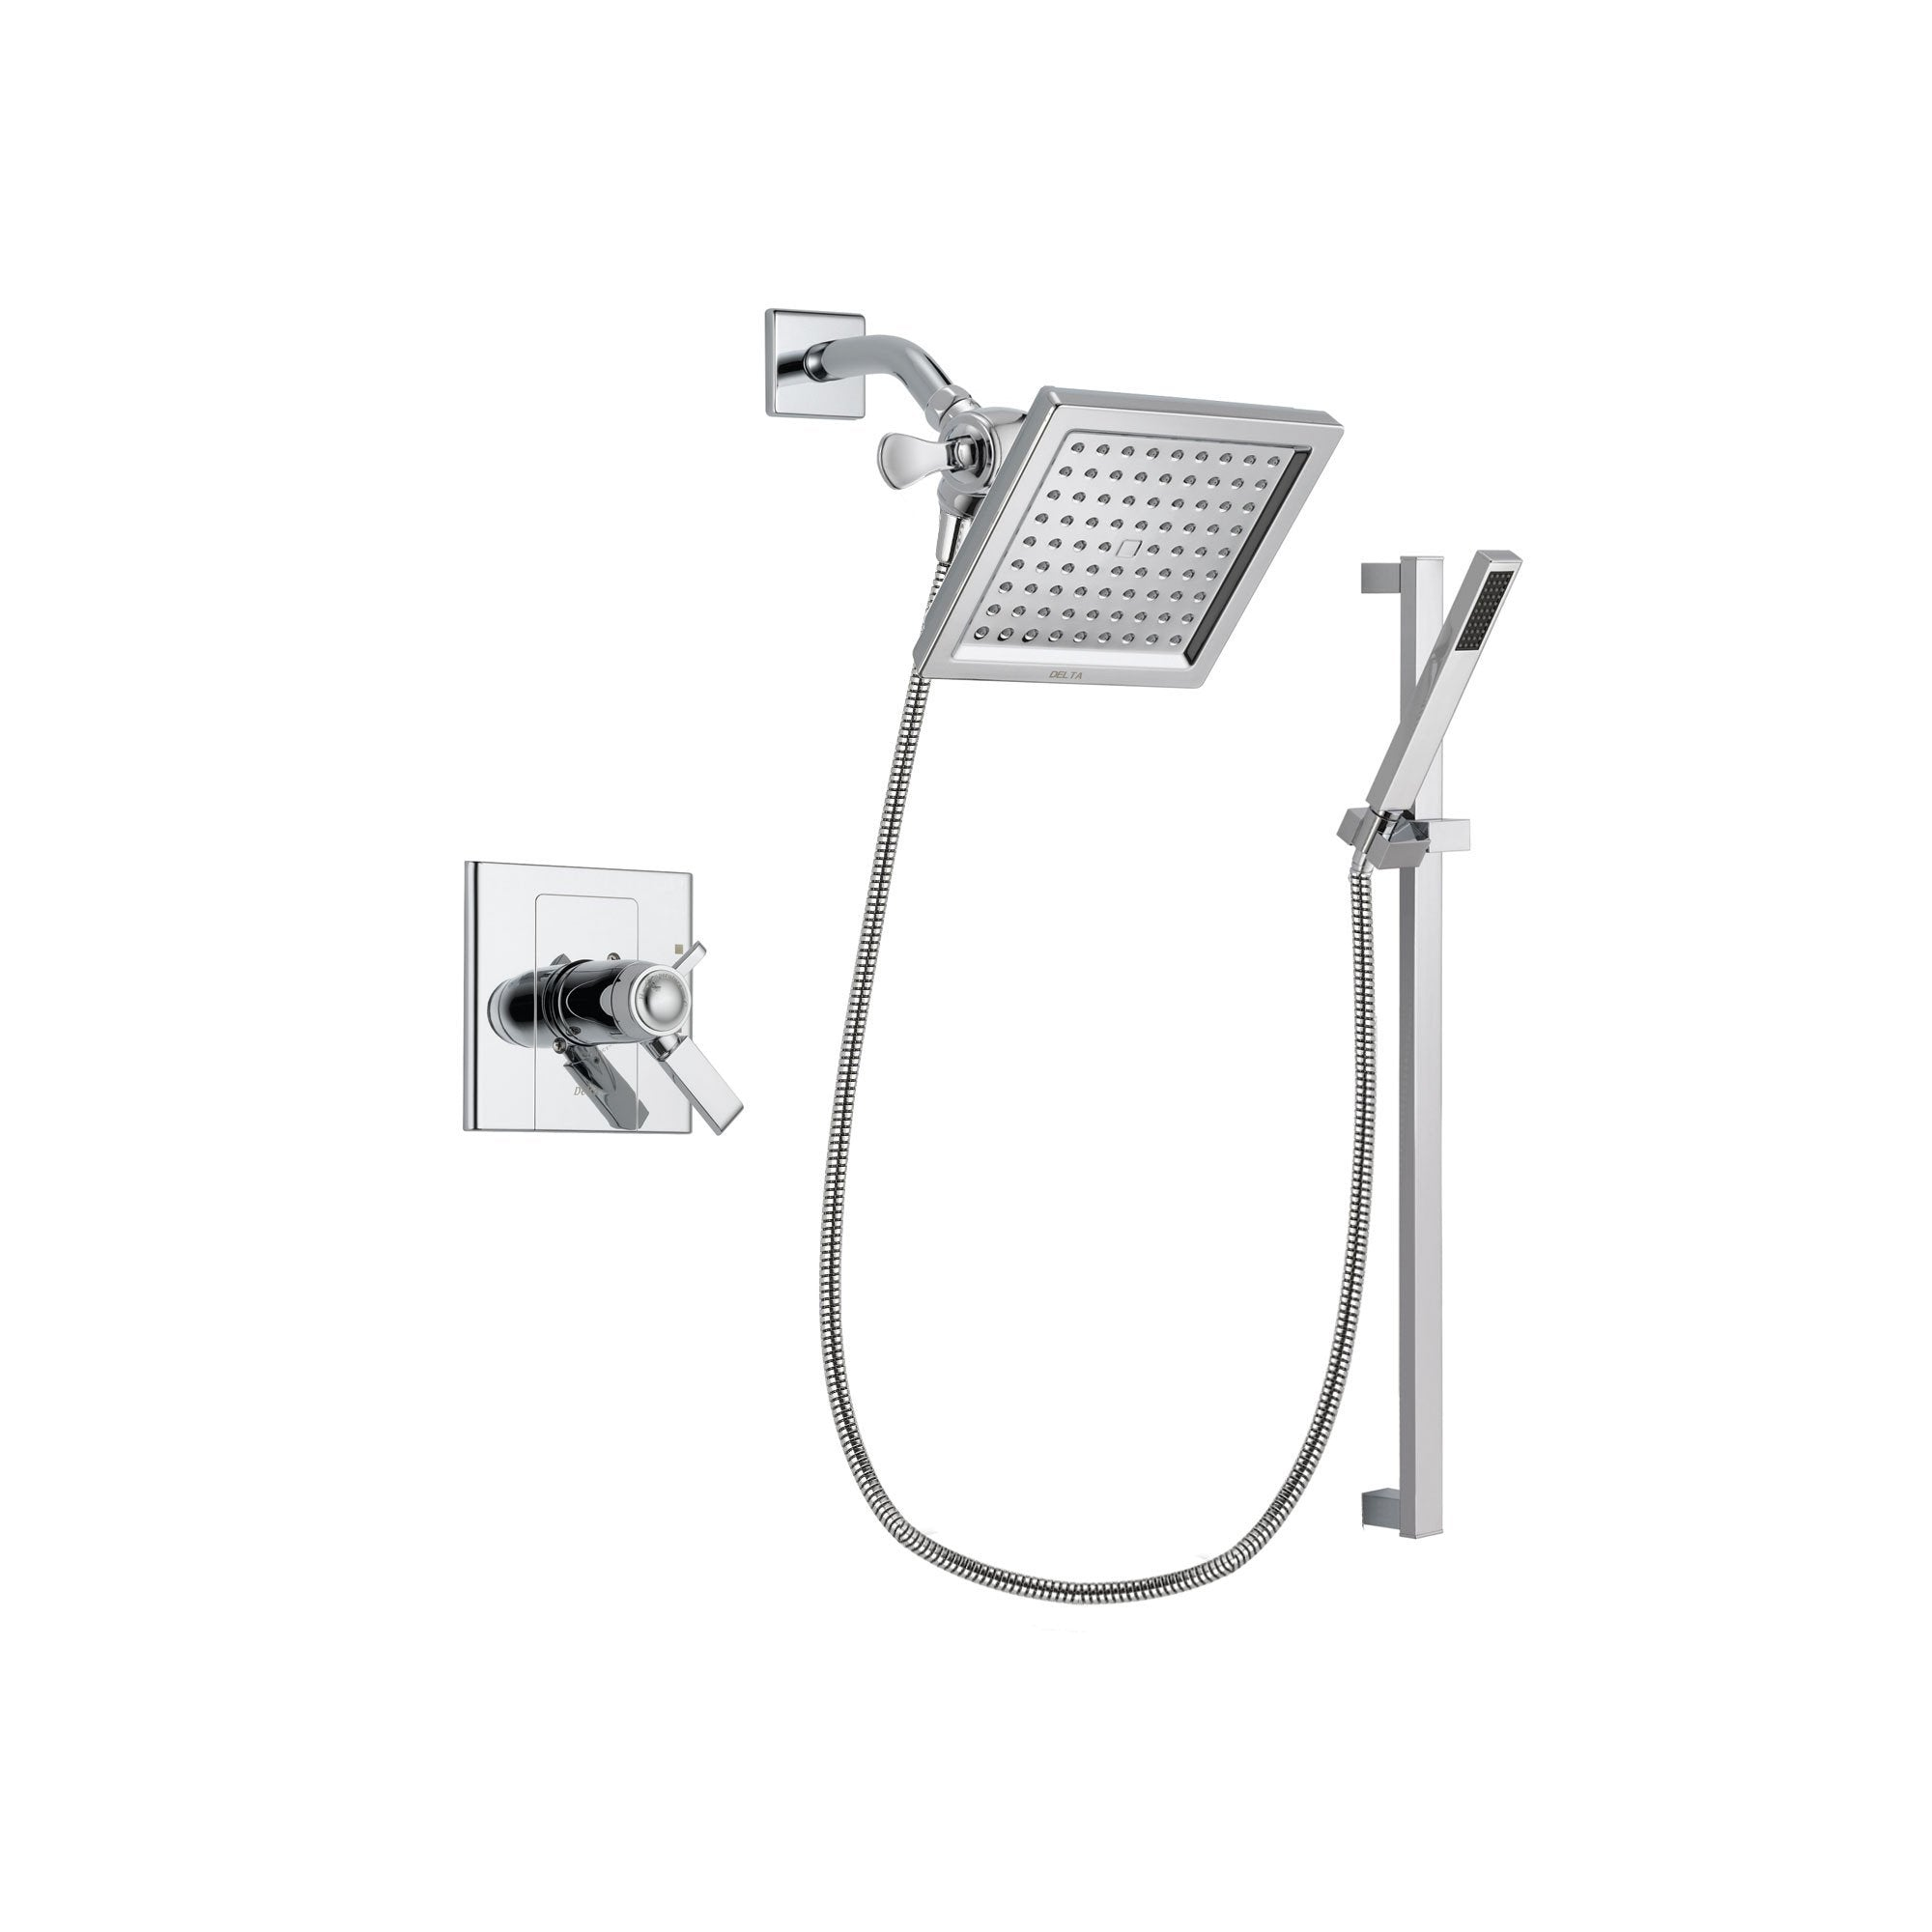 Delta Arzo Chrome Finish Thermostatic Shower Faucet System Package with 6.5-inch Square Rain Showerhead and Modern Square Wall Mount Slide Bar with Handheld Shower Spray Includes Rough-in Valve DSP0213V